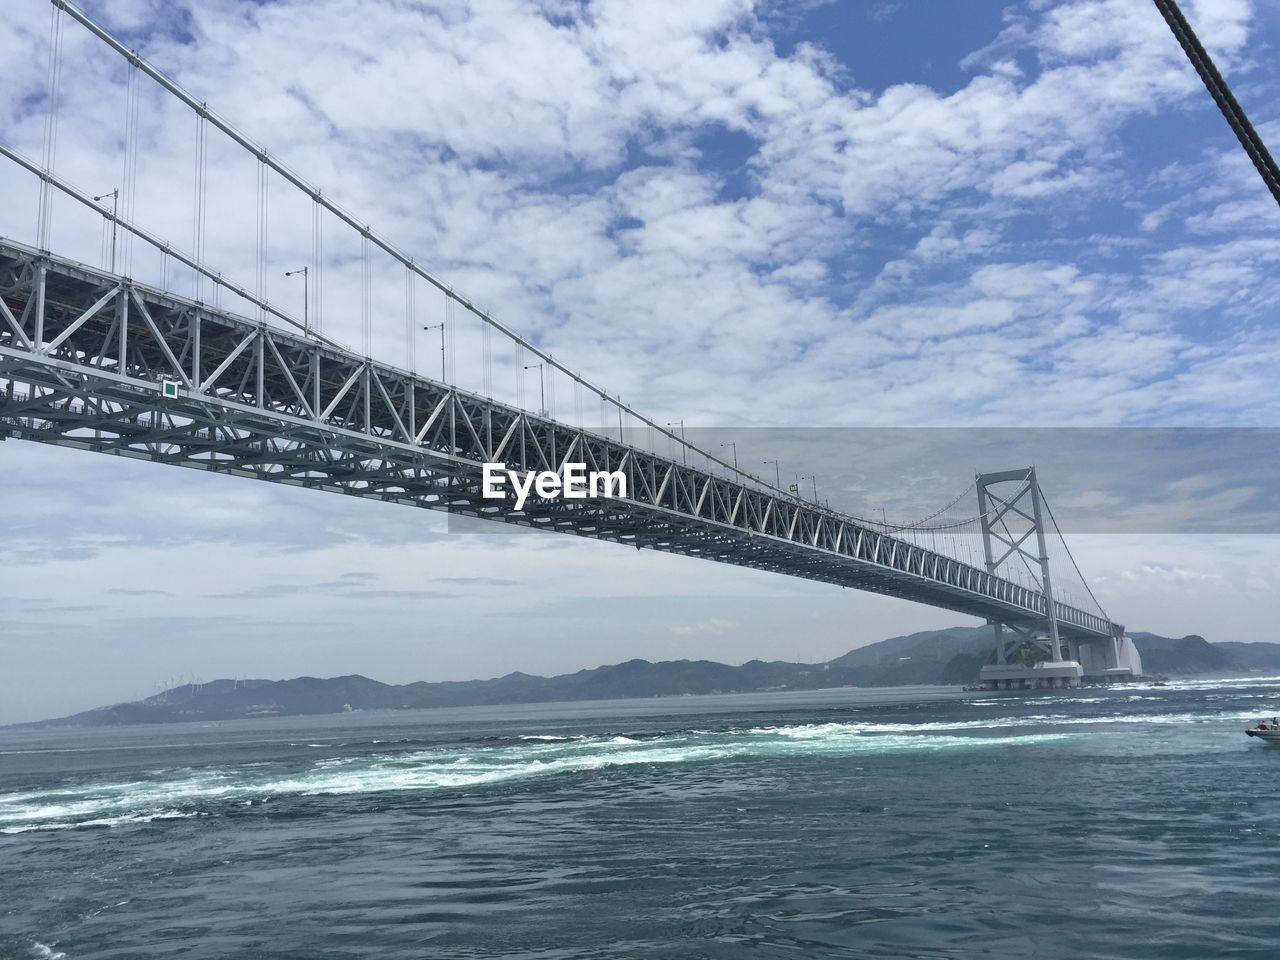 bridge - man made structure, connection, suspension bridge, sky, transportation, architecture, engineering, cloud - sky, travel destinations, built structure, water, sea, outdoors, tourism, travel, no people, day, nature, bridge, beauty in nature, mountain, city